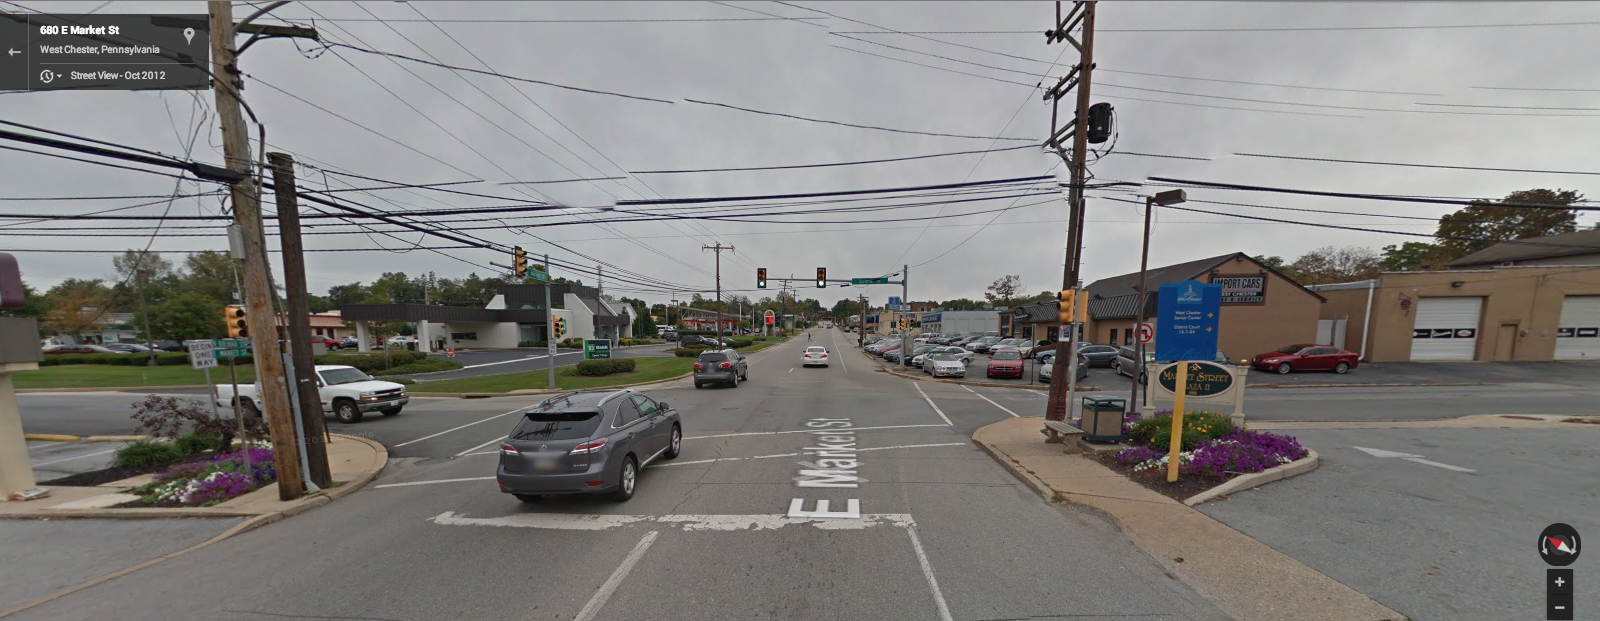 Google Street View of the crash site at East Market and Bolmar St in West Goshen Township